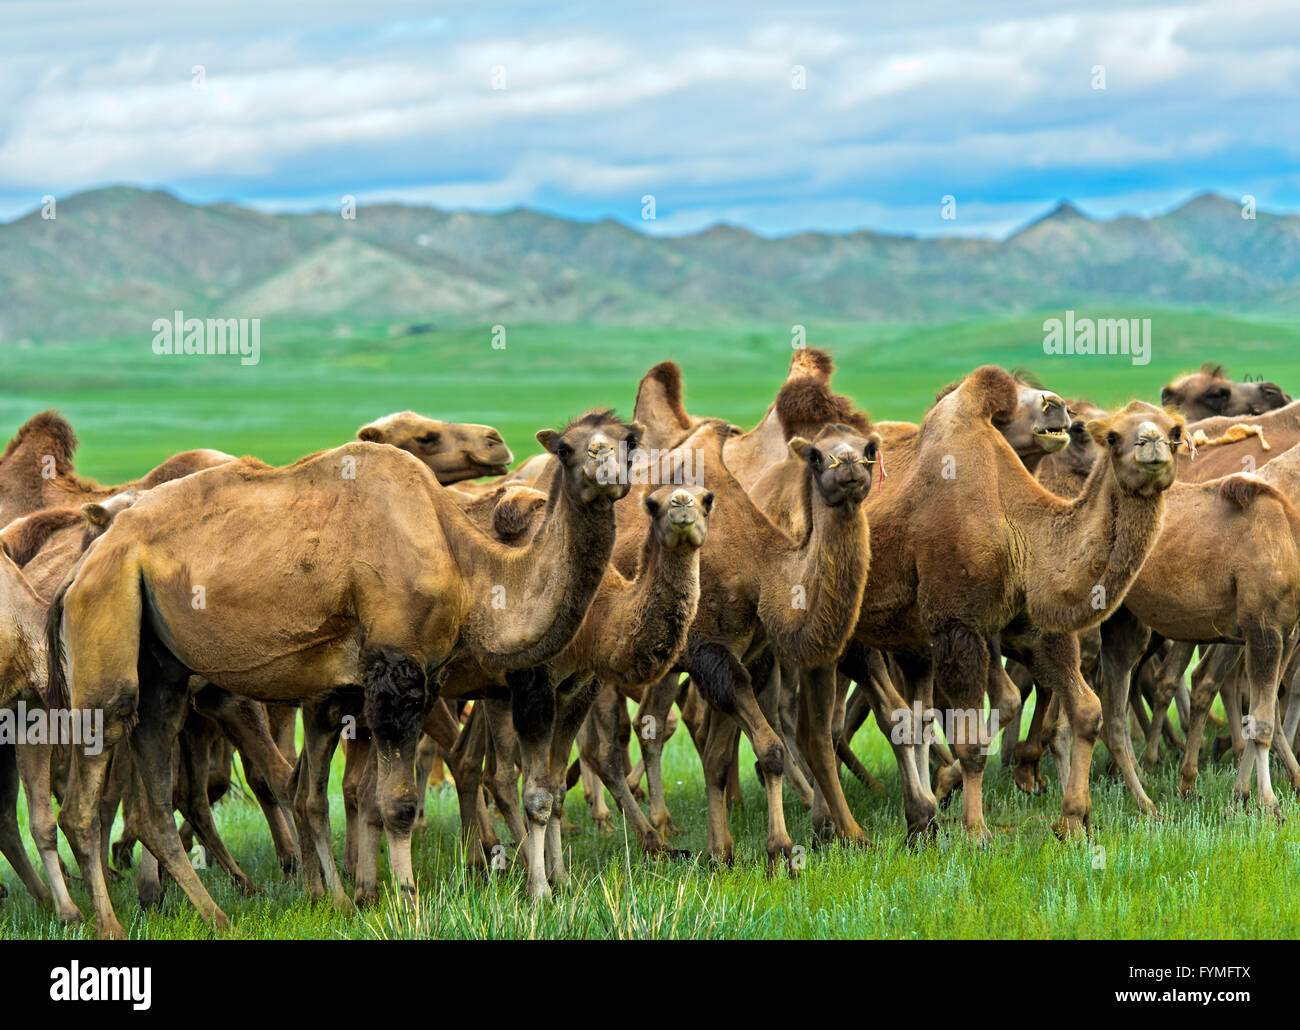 Herd of Bactrian camels (Camelus bactrianus) roaming in the Mongolian steppe, Mongolia Stock Photo